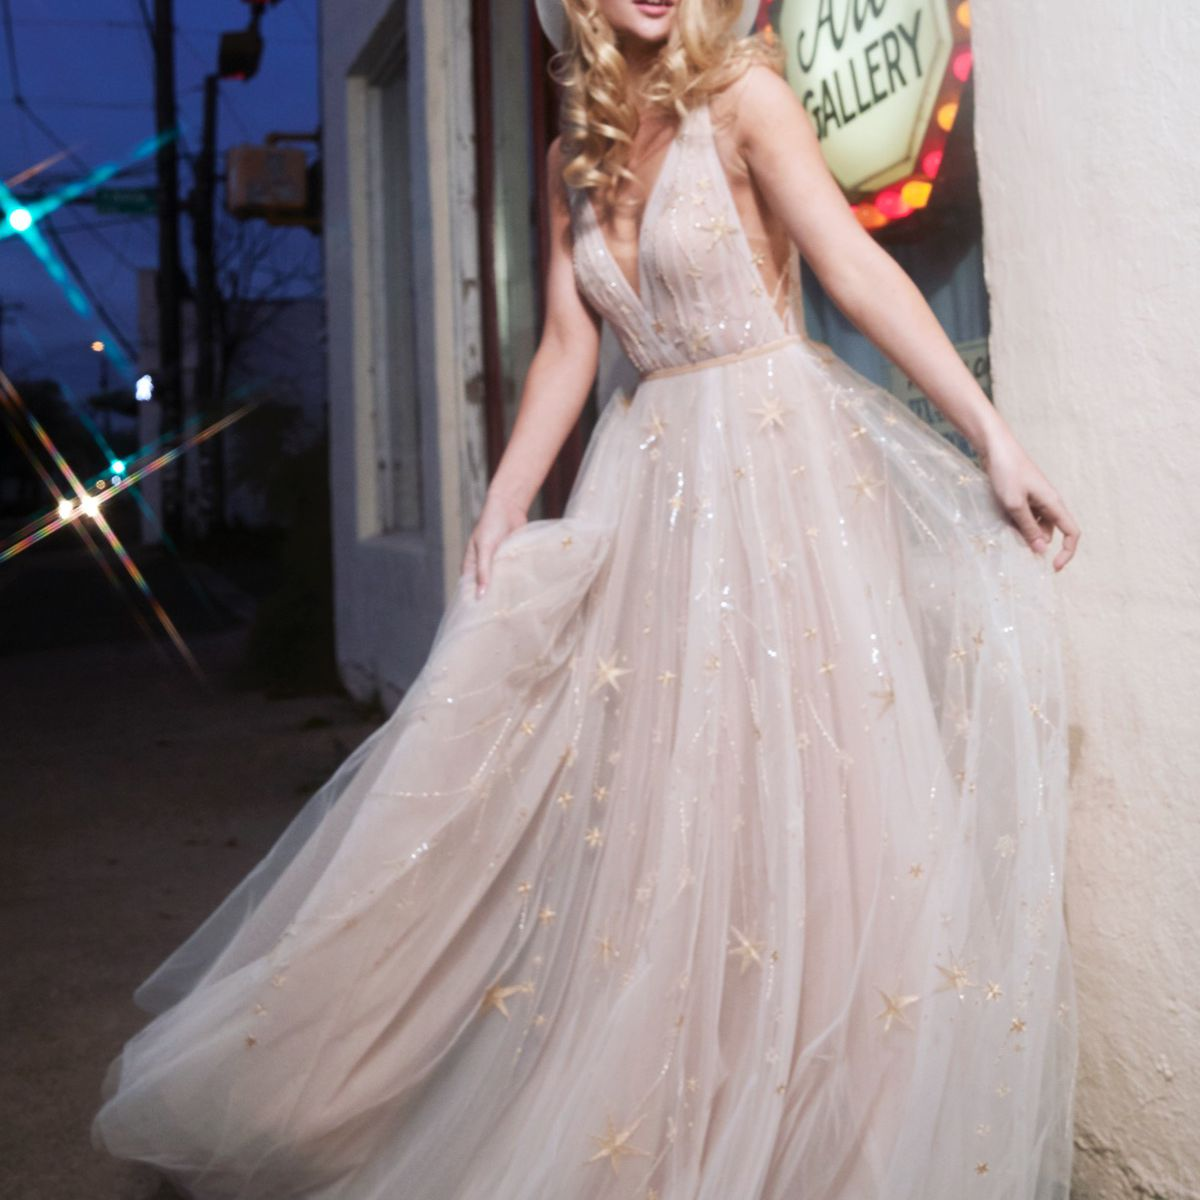 Model in V-neck tulle ballgown with shooting star embroidery and beading